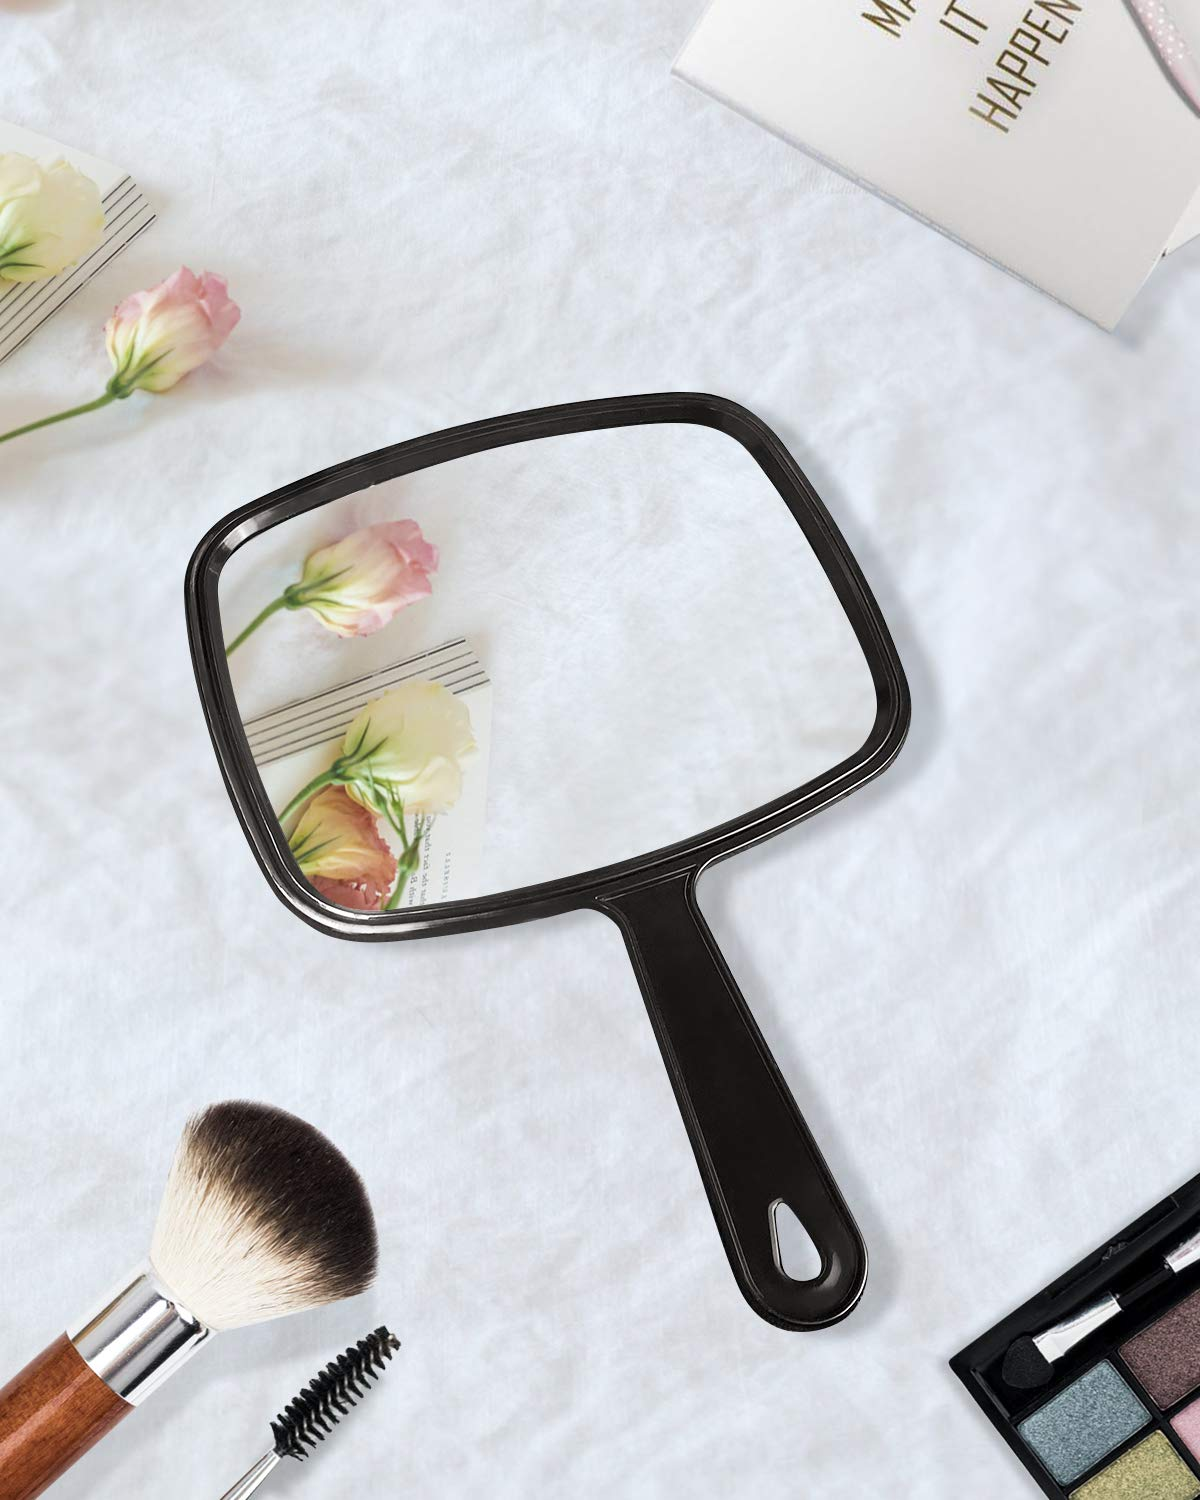 Gladmart Hand Mirror Salon Barber Hairdressing Handheld Mirror with Handle(Square Black): Beauty